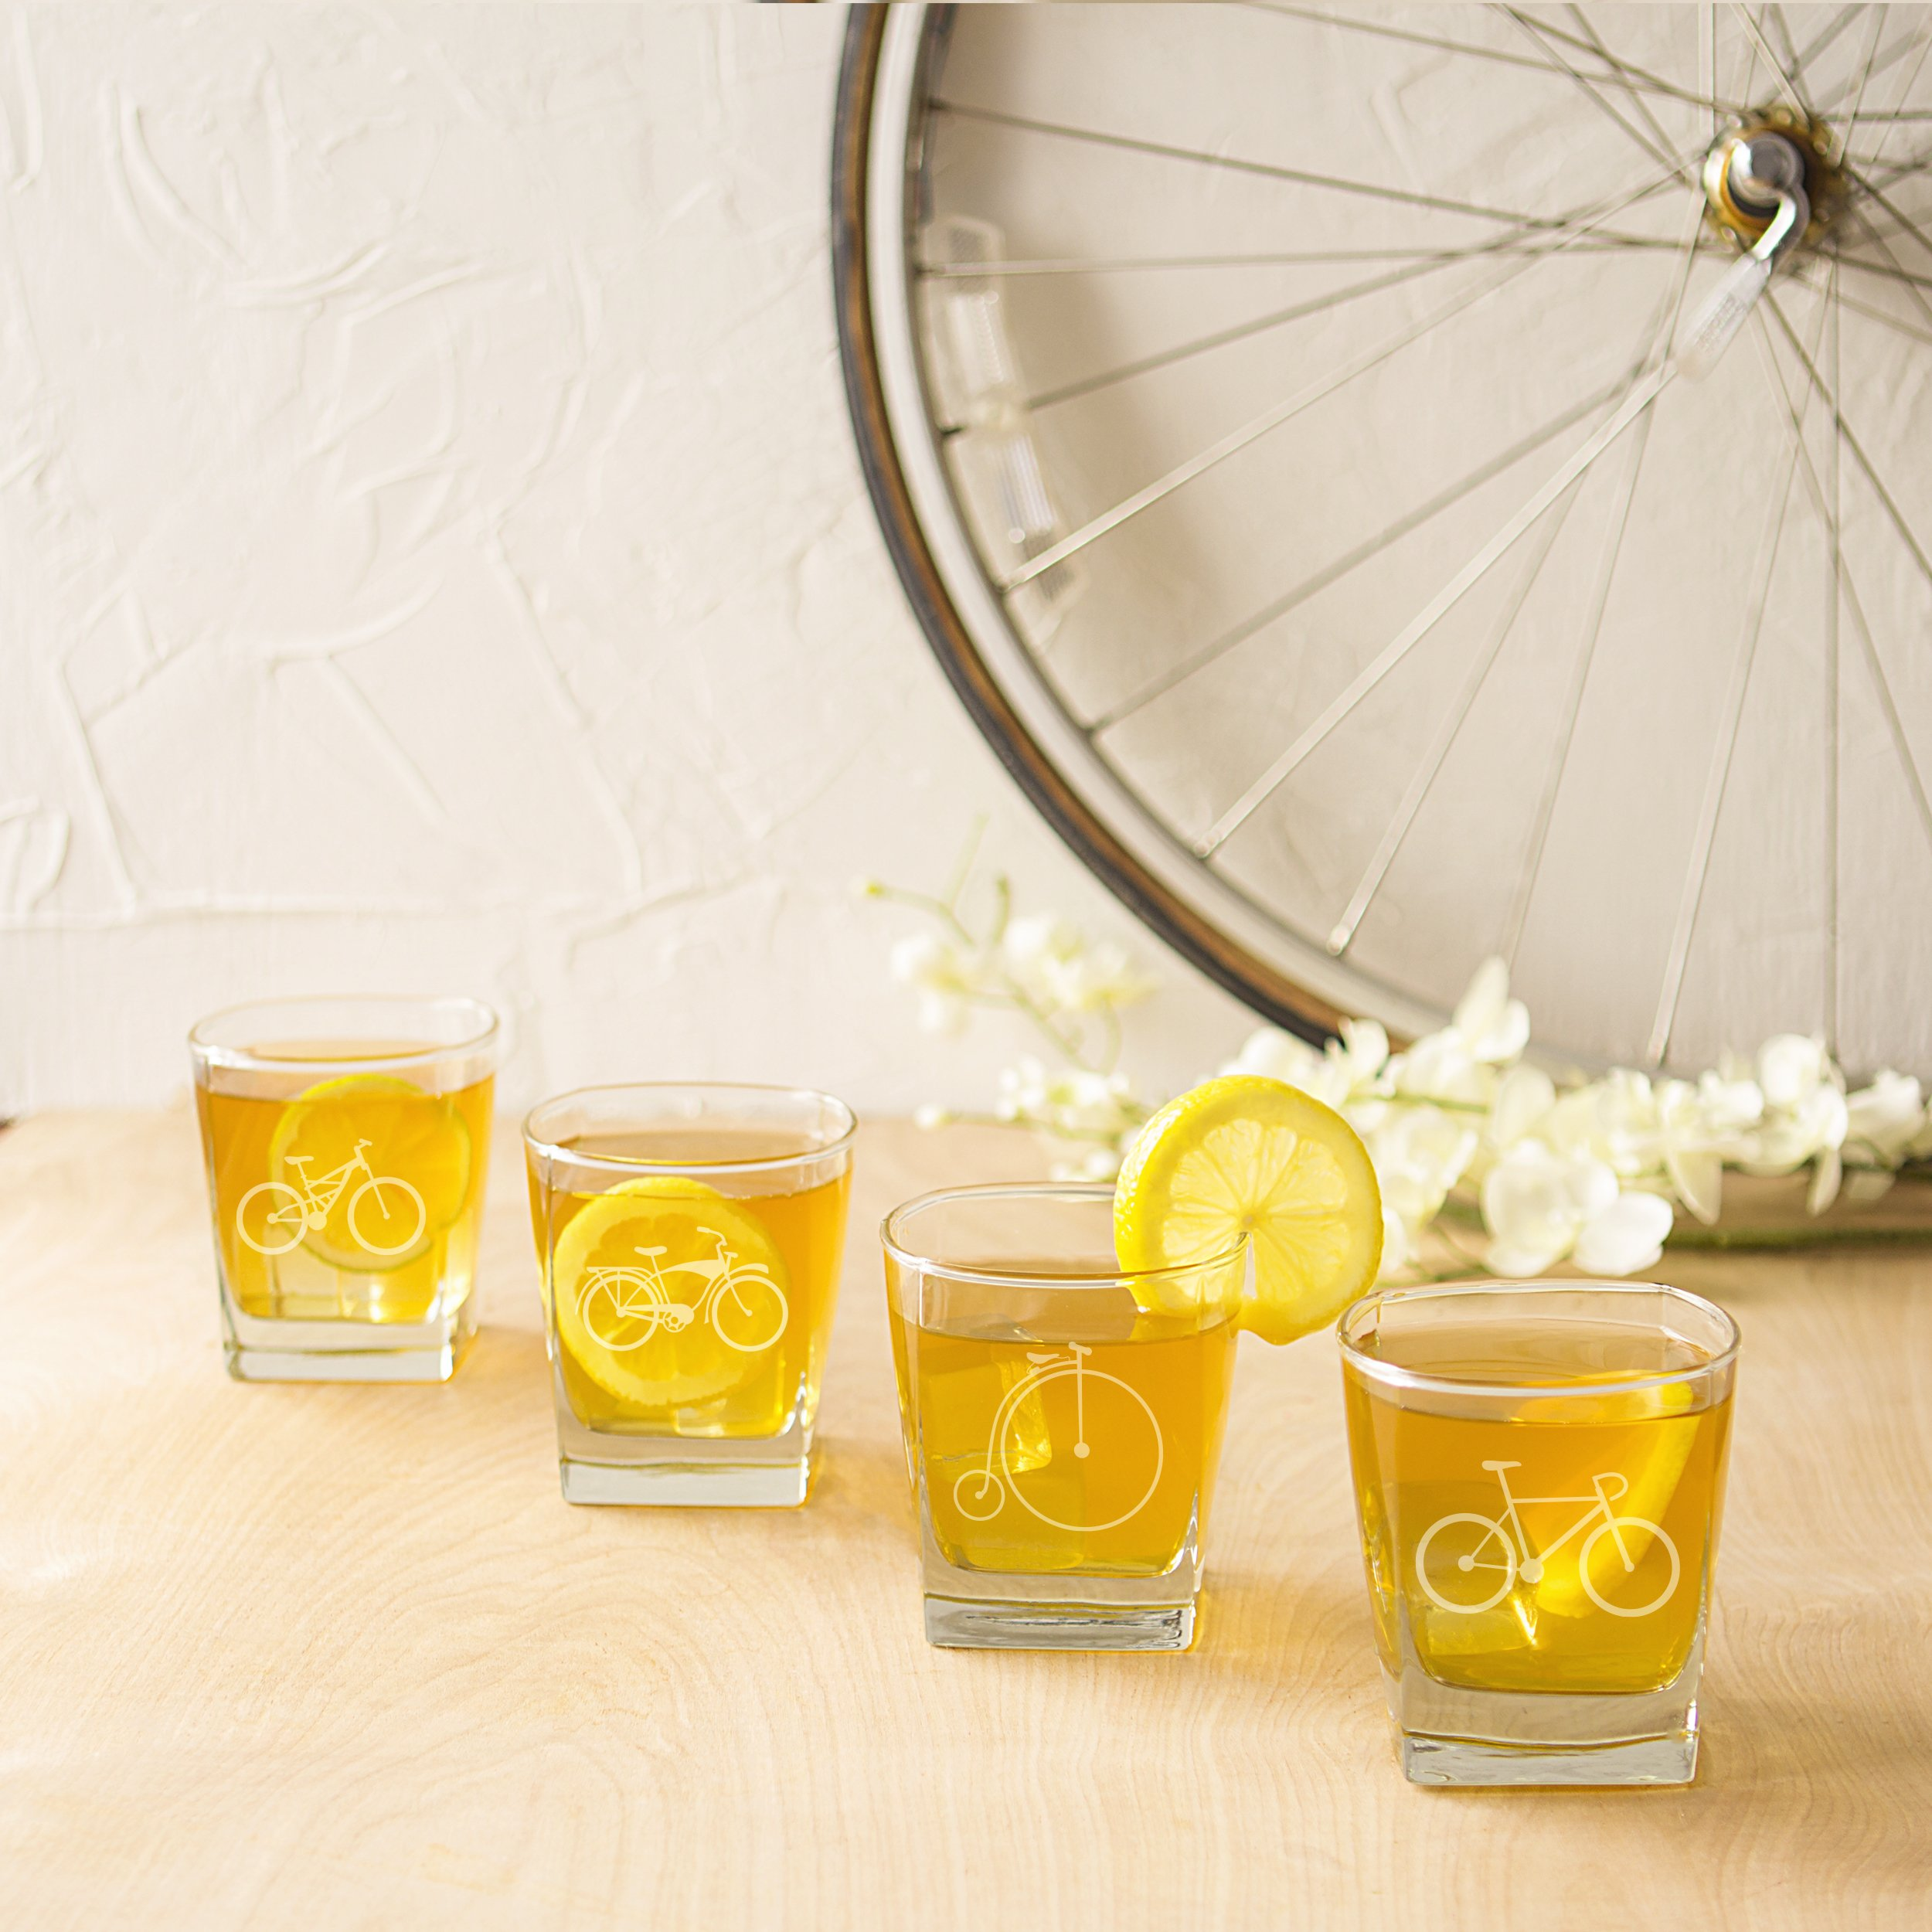 Cathy's Concepts Bicycle Rocks Glasses (Set of 4) by Cathy's Concepts (Image #3)